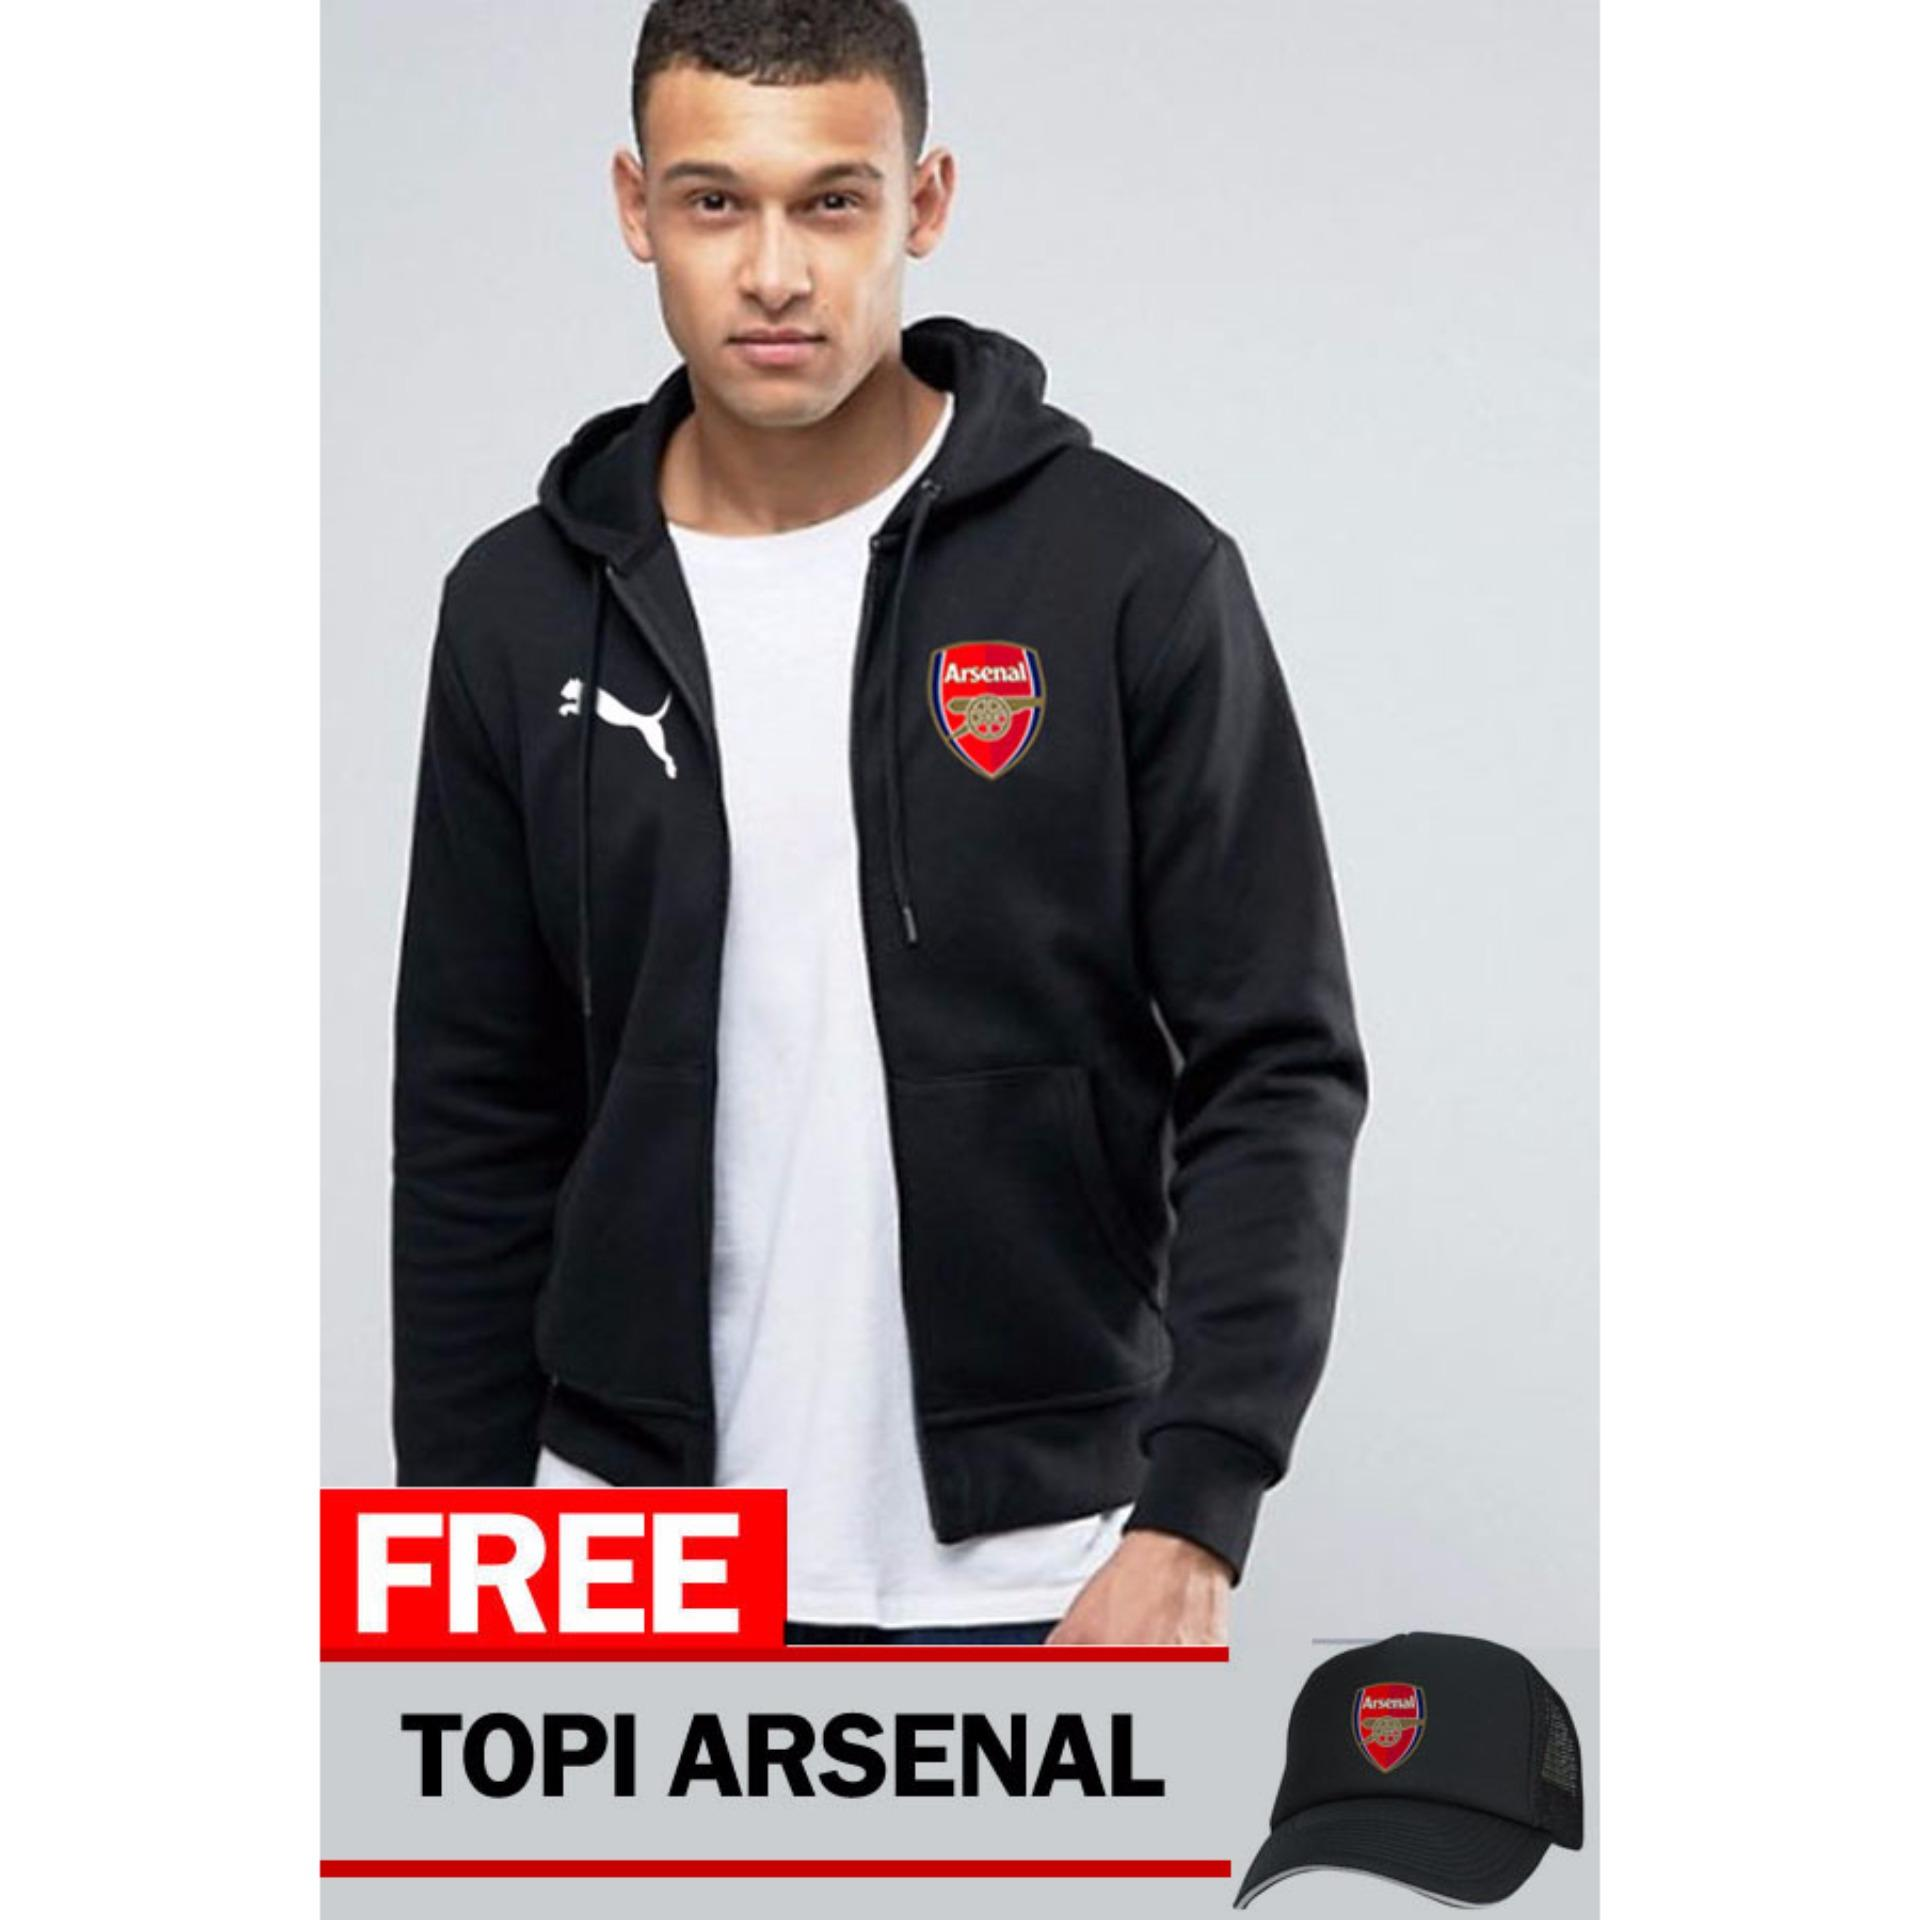 Harga Just Cloth Jaket Zipper Arsenal Free Topi Arsenal Hitam Online